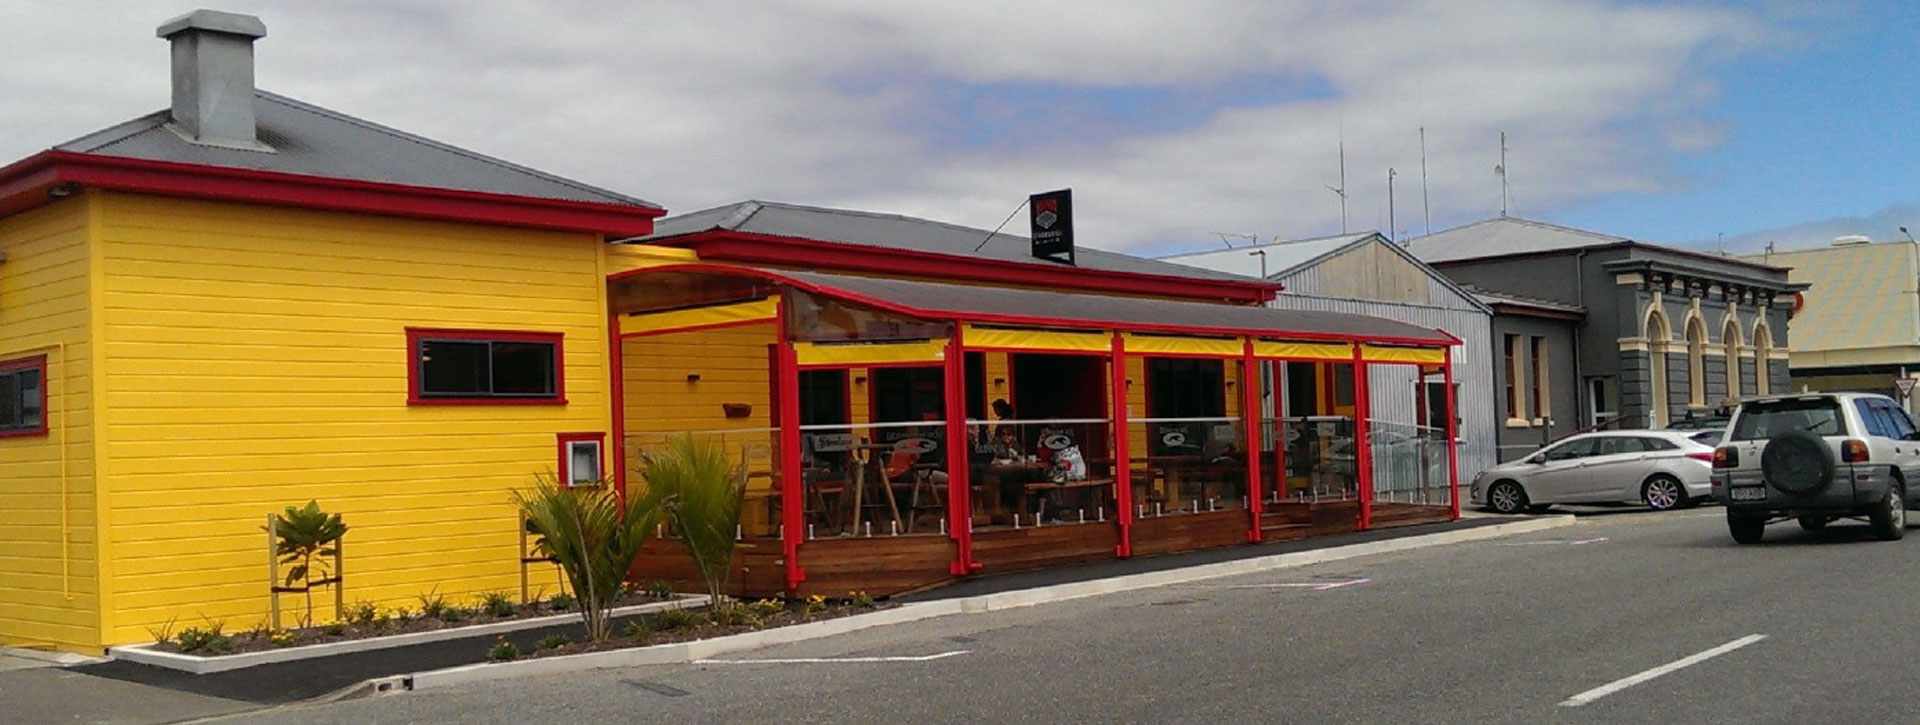 The Denniston Dog Restaurant & Bar, Westport